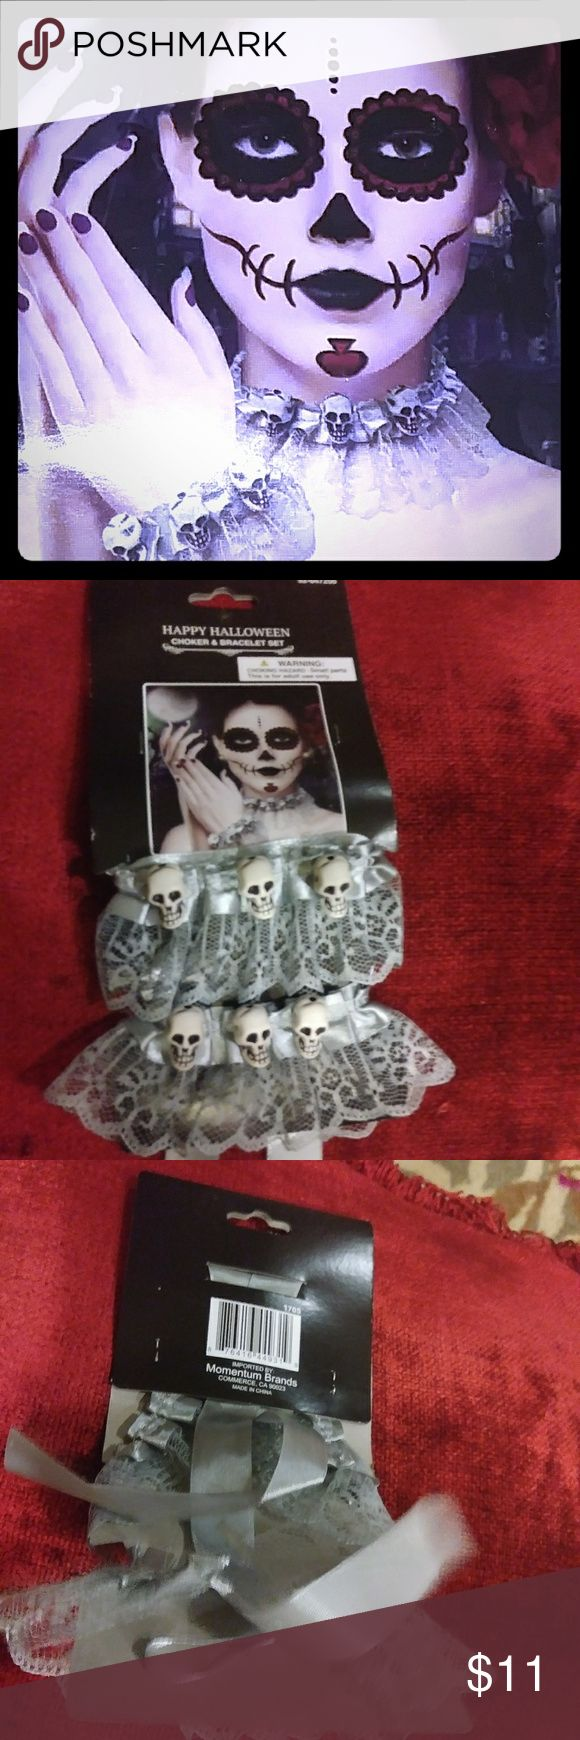 Pin lovi poe for tattoo pictures to pin on pinterest on pinterest - Bracelet Set Lace Skulls Goth Punk Halloween Boutique